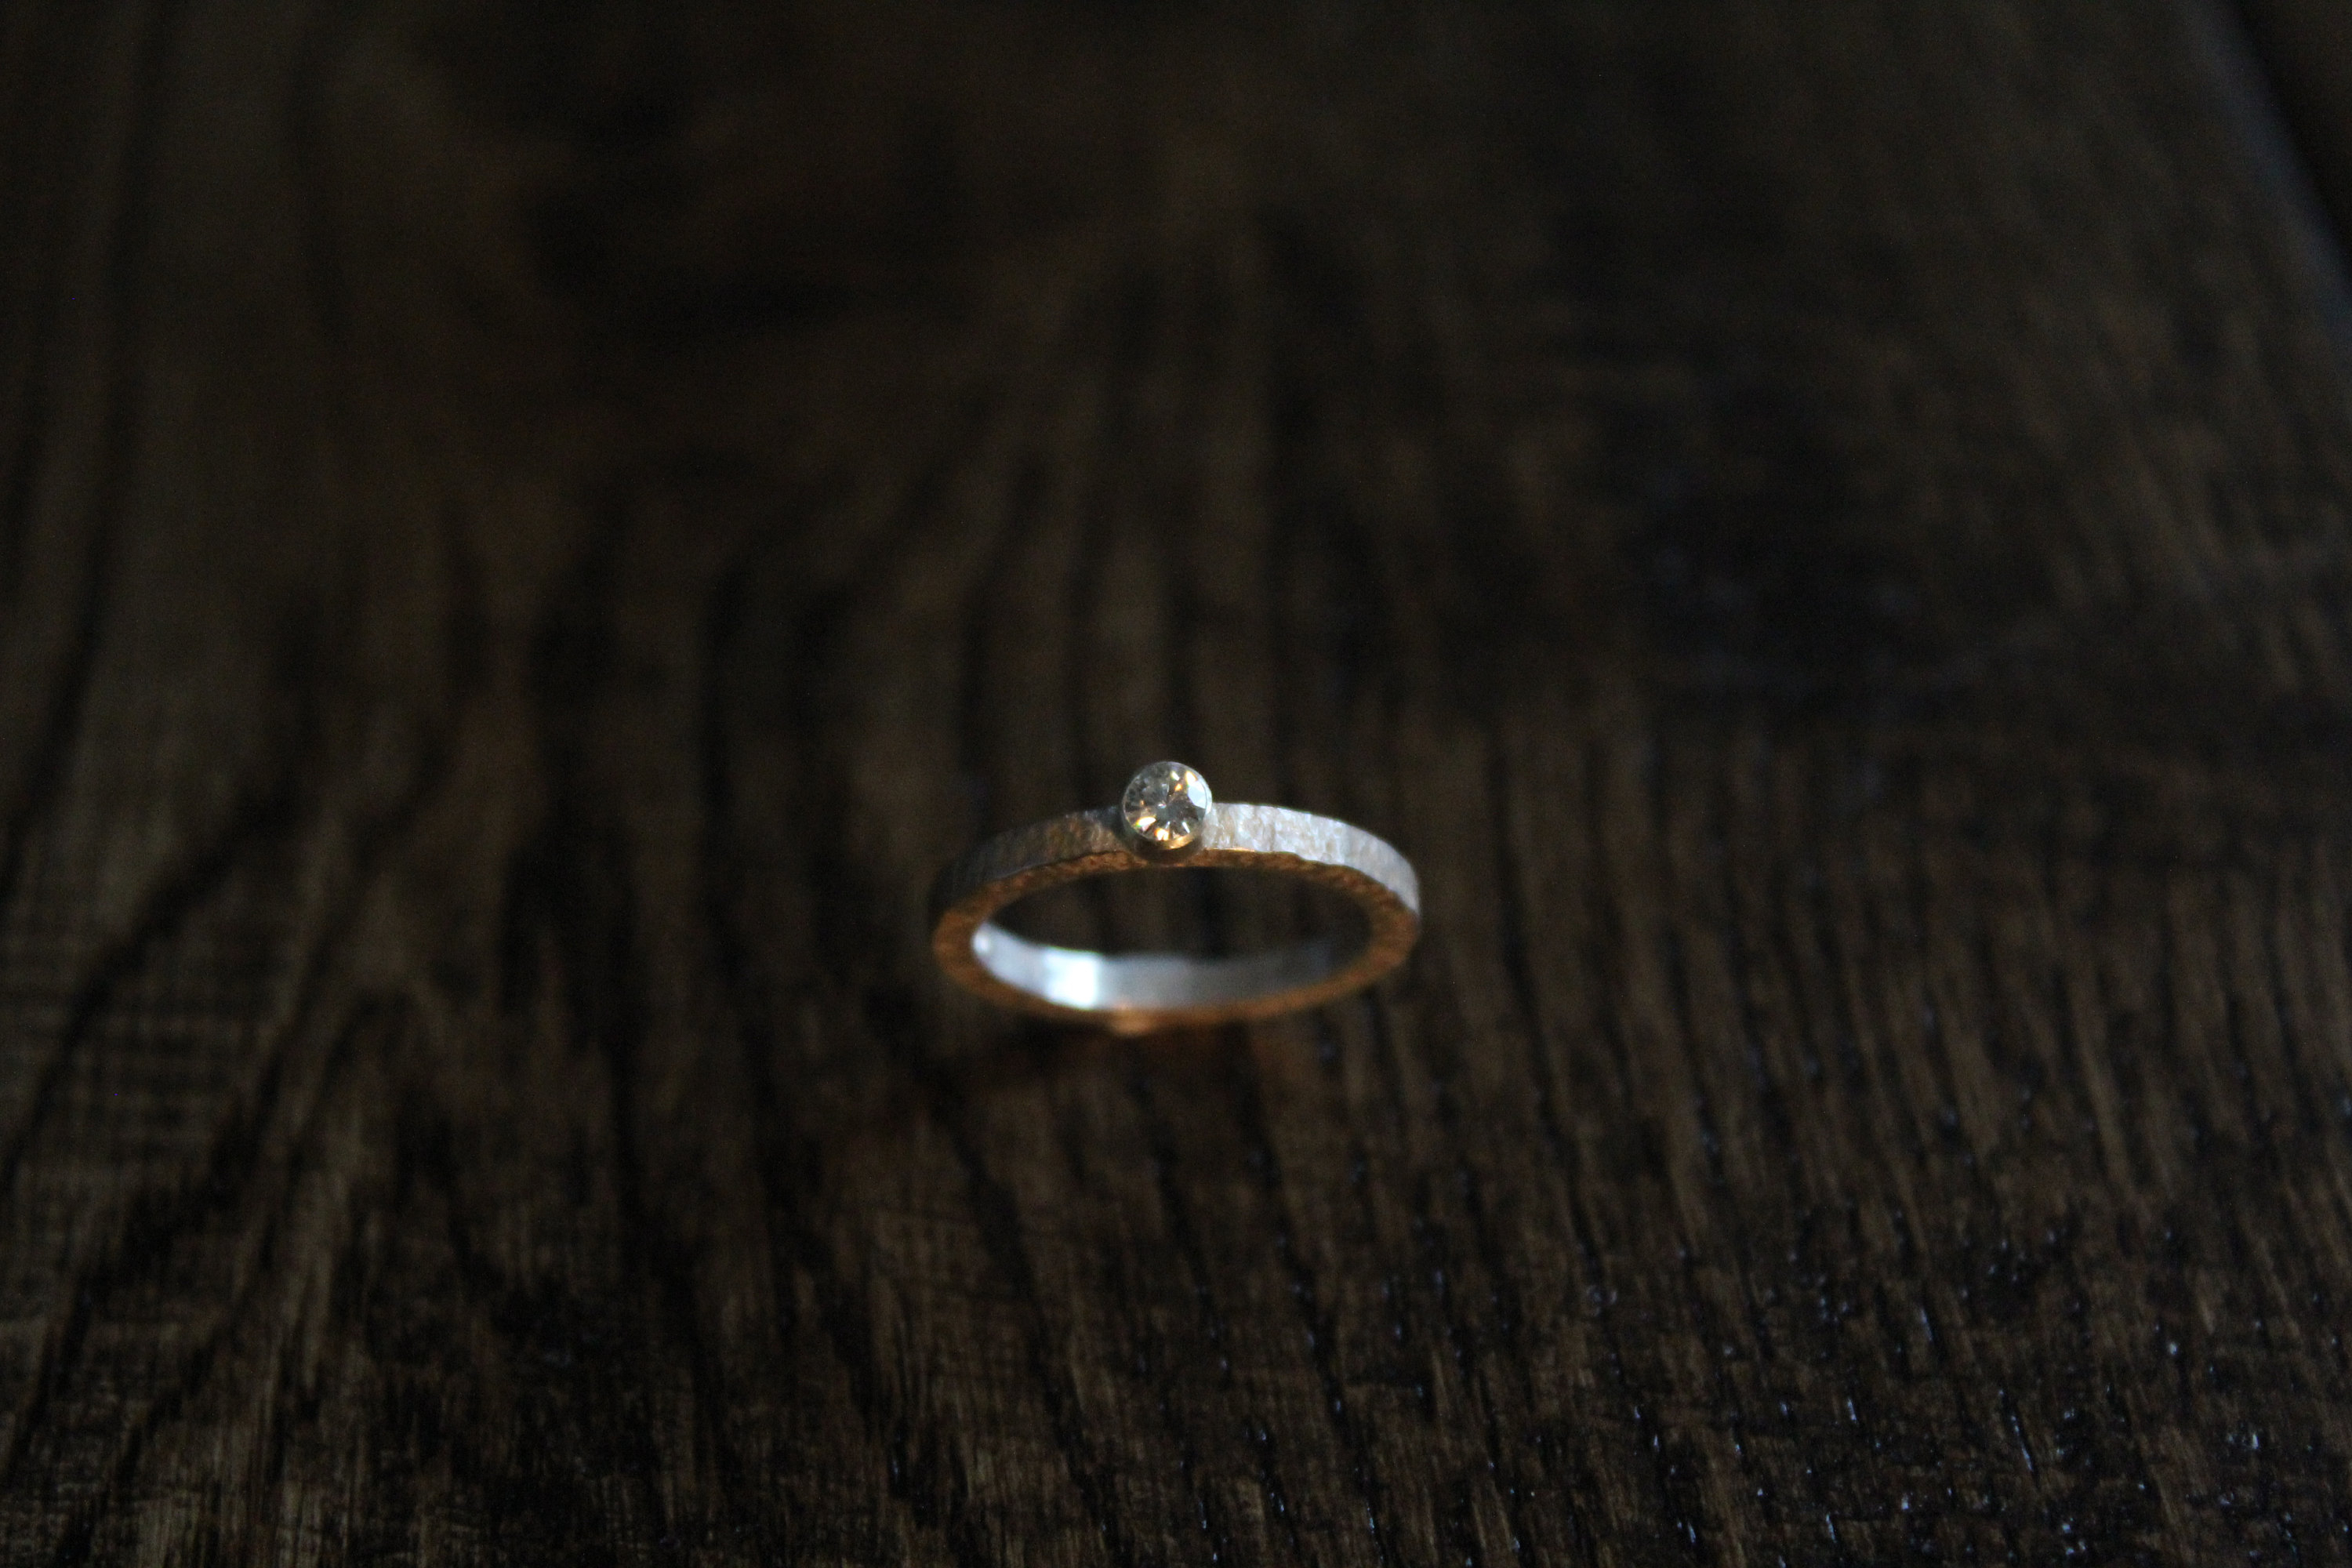 Silver And Moissanite Hammered Band Ring Intended For Most Recently Released Simple Sparkling Band Rings (View 19 of 25)